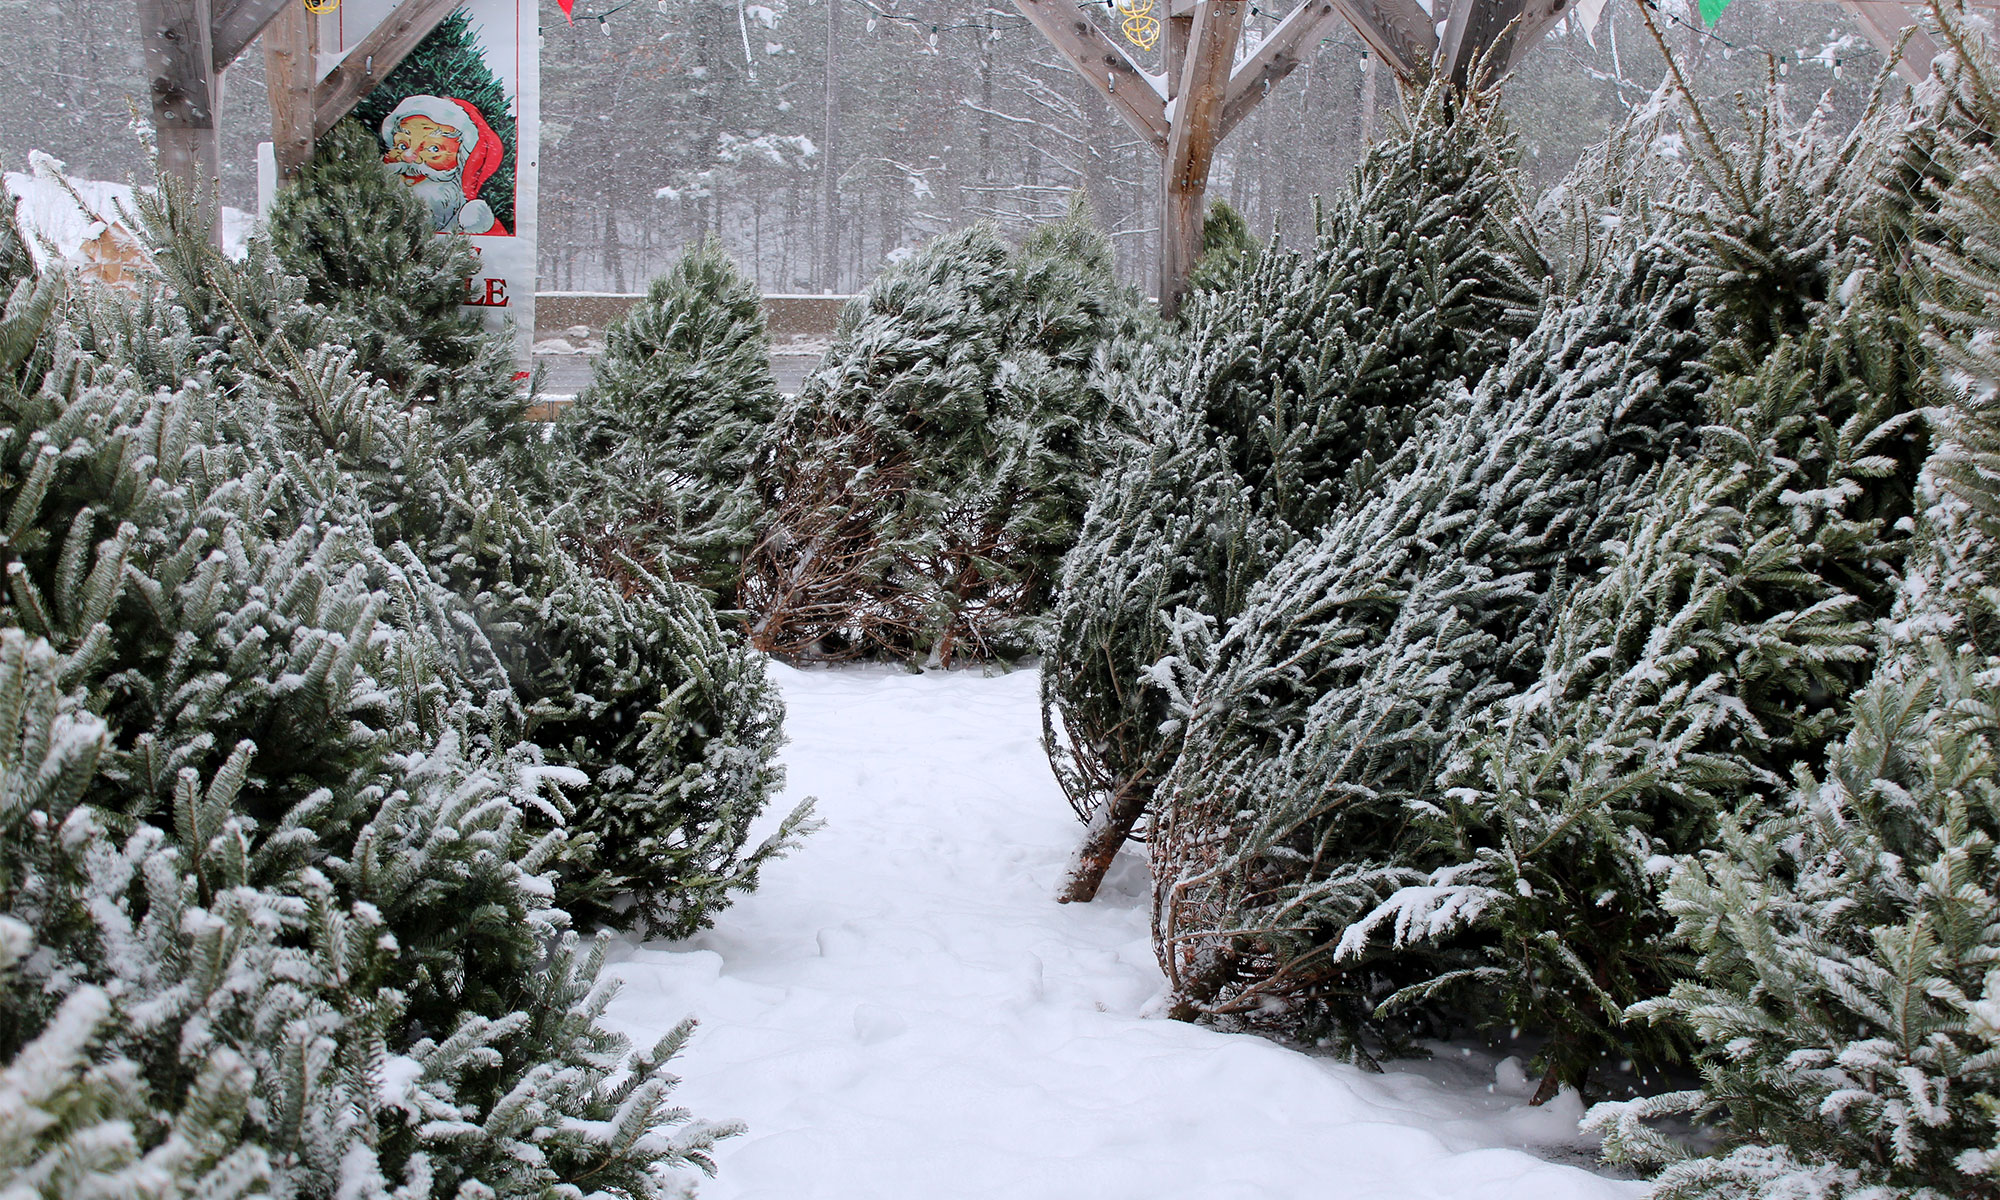 Various trees including Scots pine, Fraser fir, balsam fir, white fir and blue spruce.